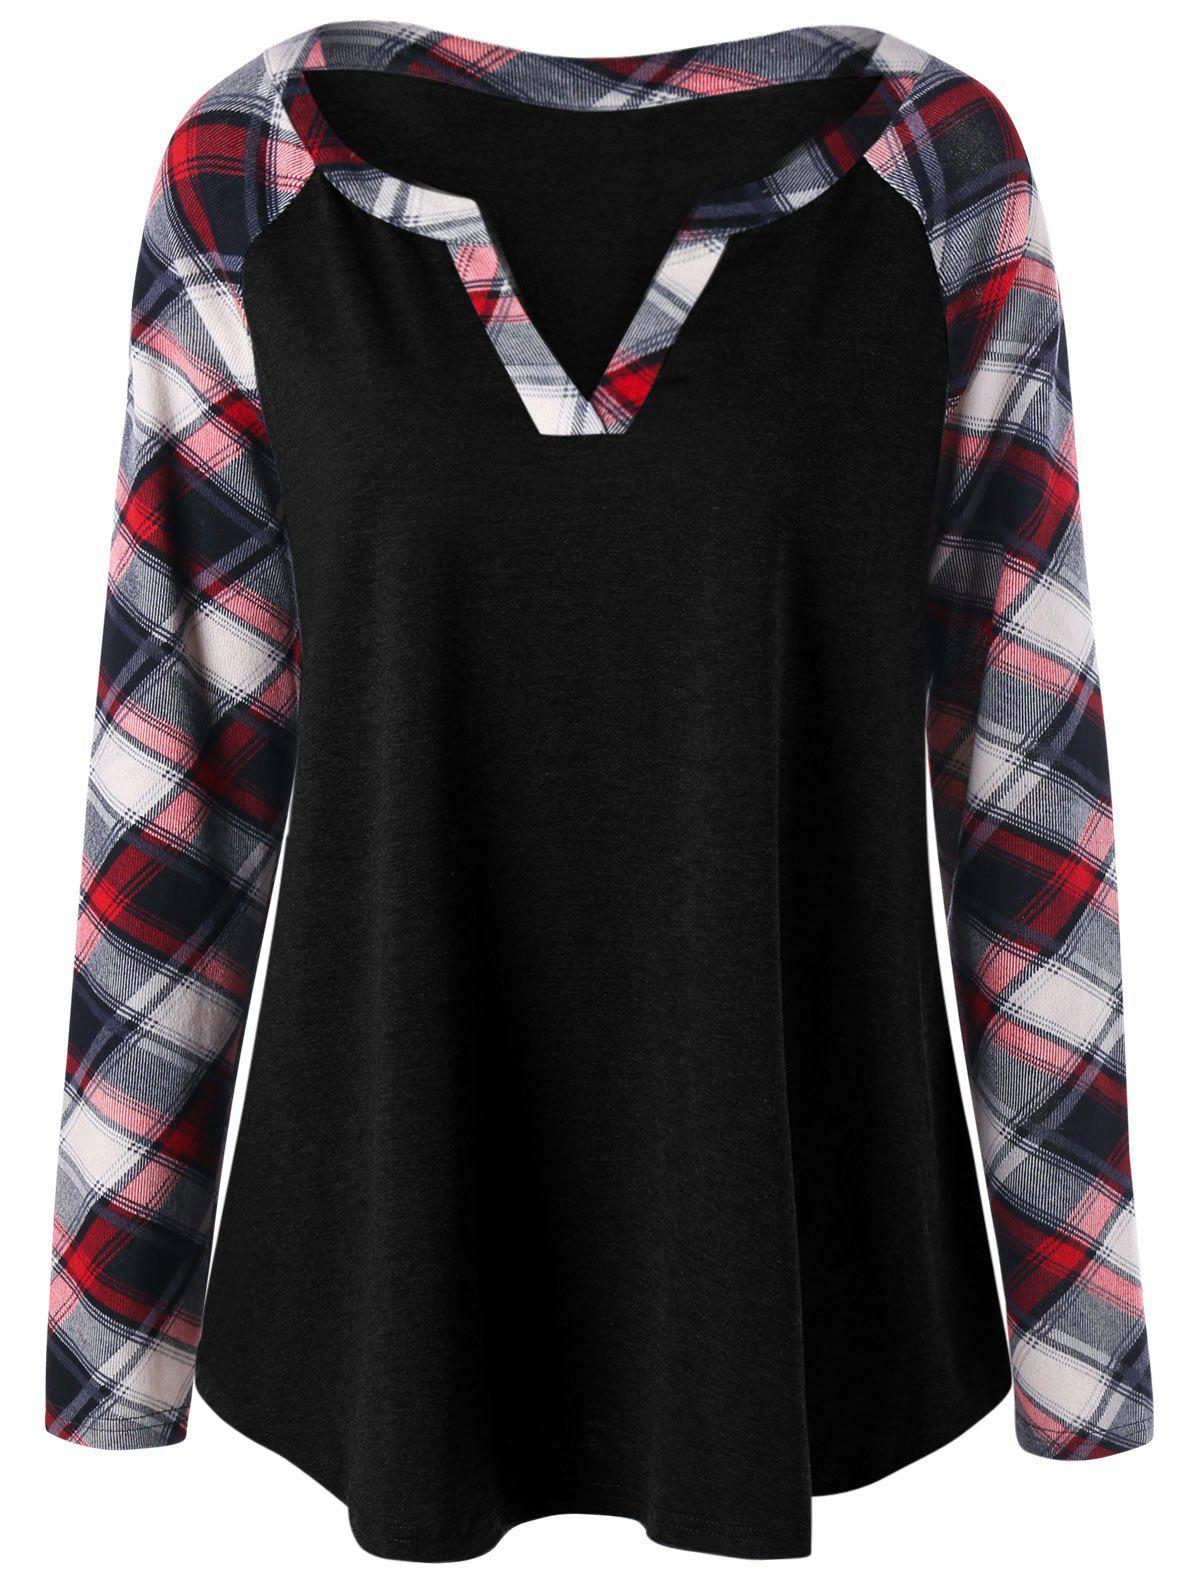 Plus Size Raglan Sleeve Plaid Top - BLACK 5XL